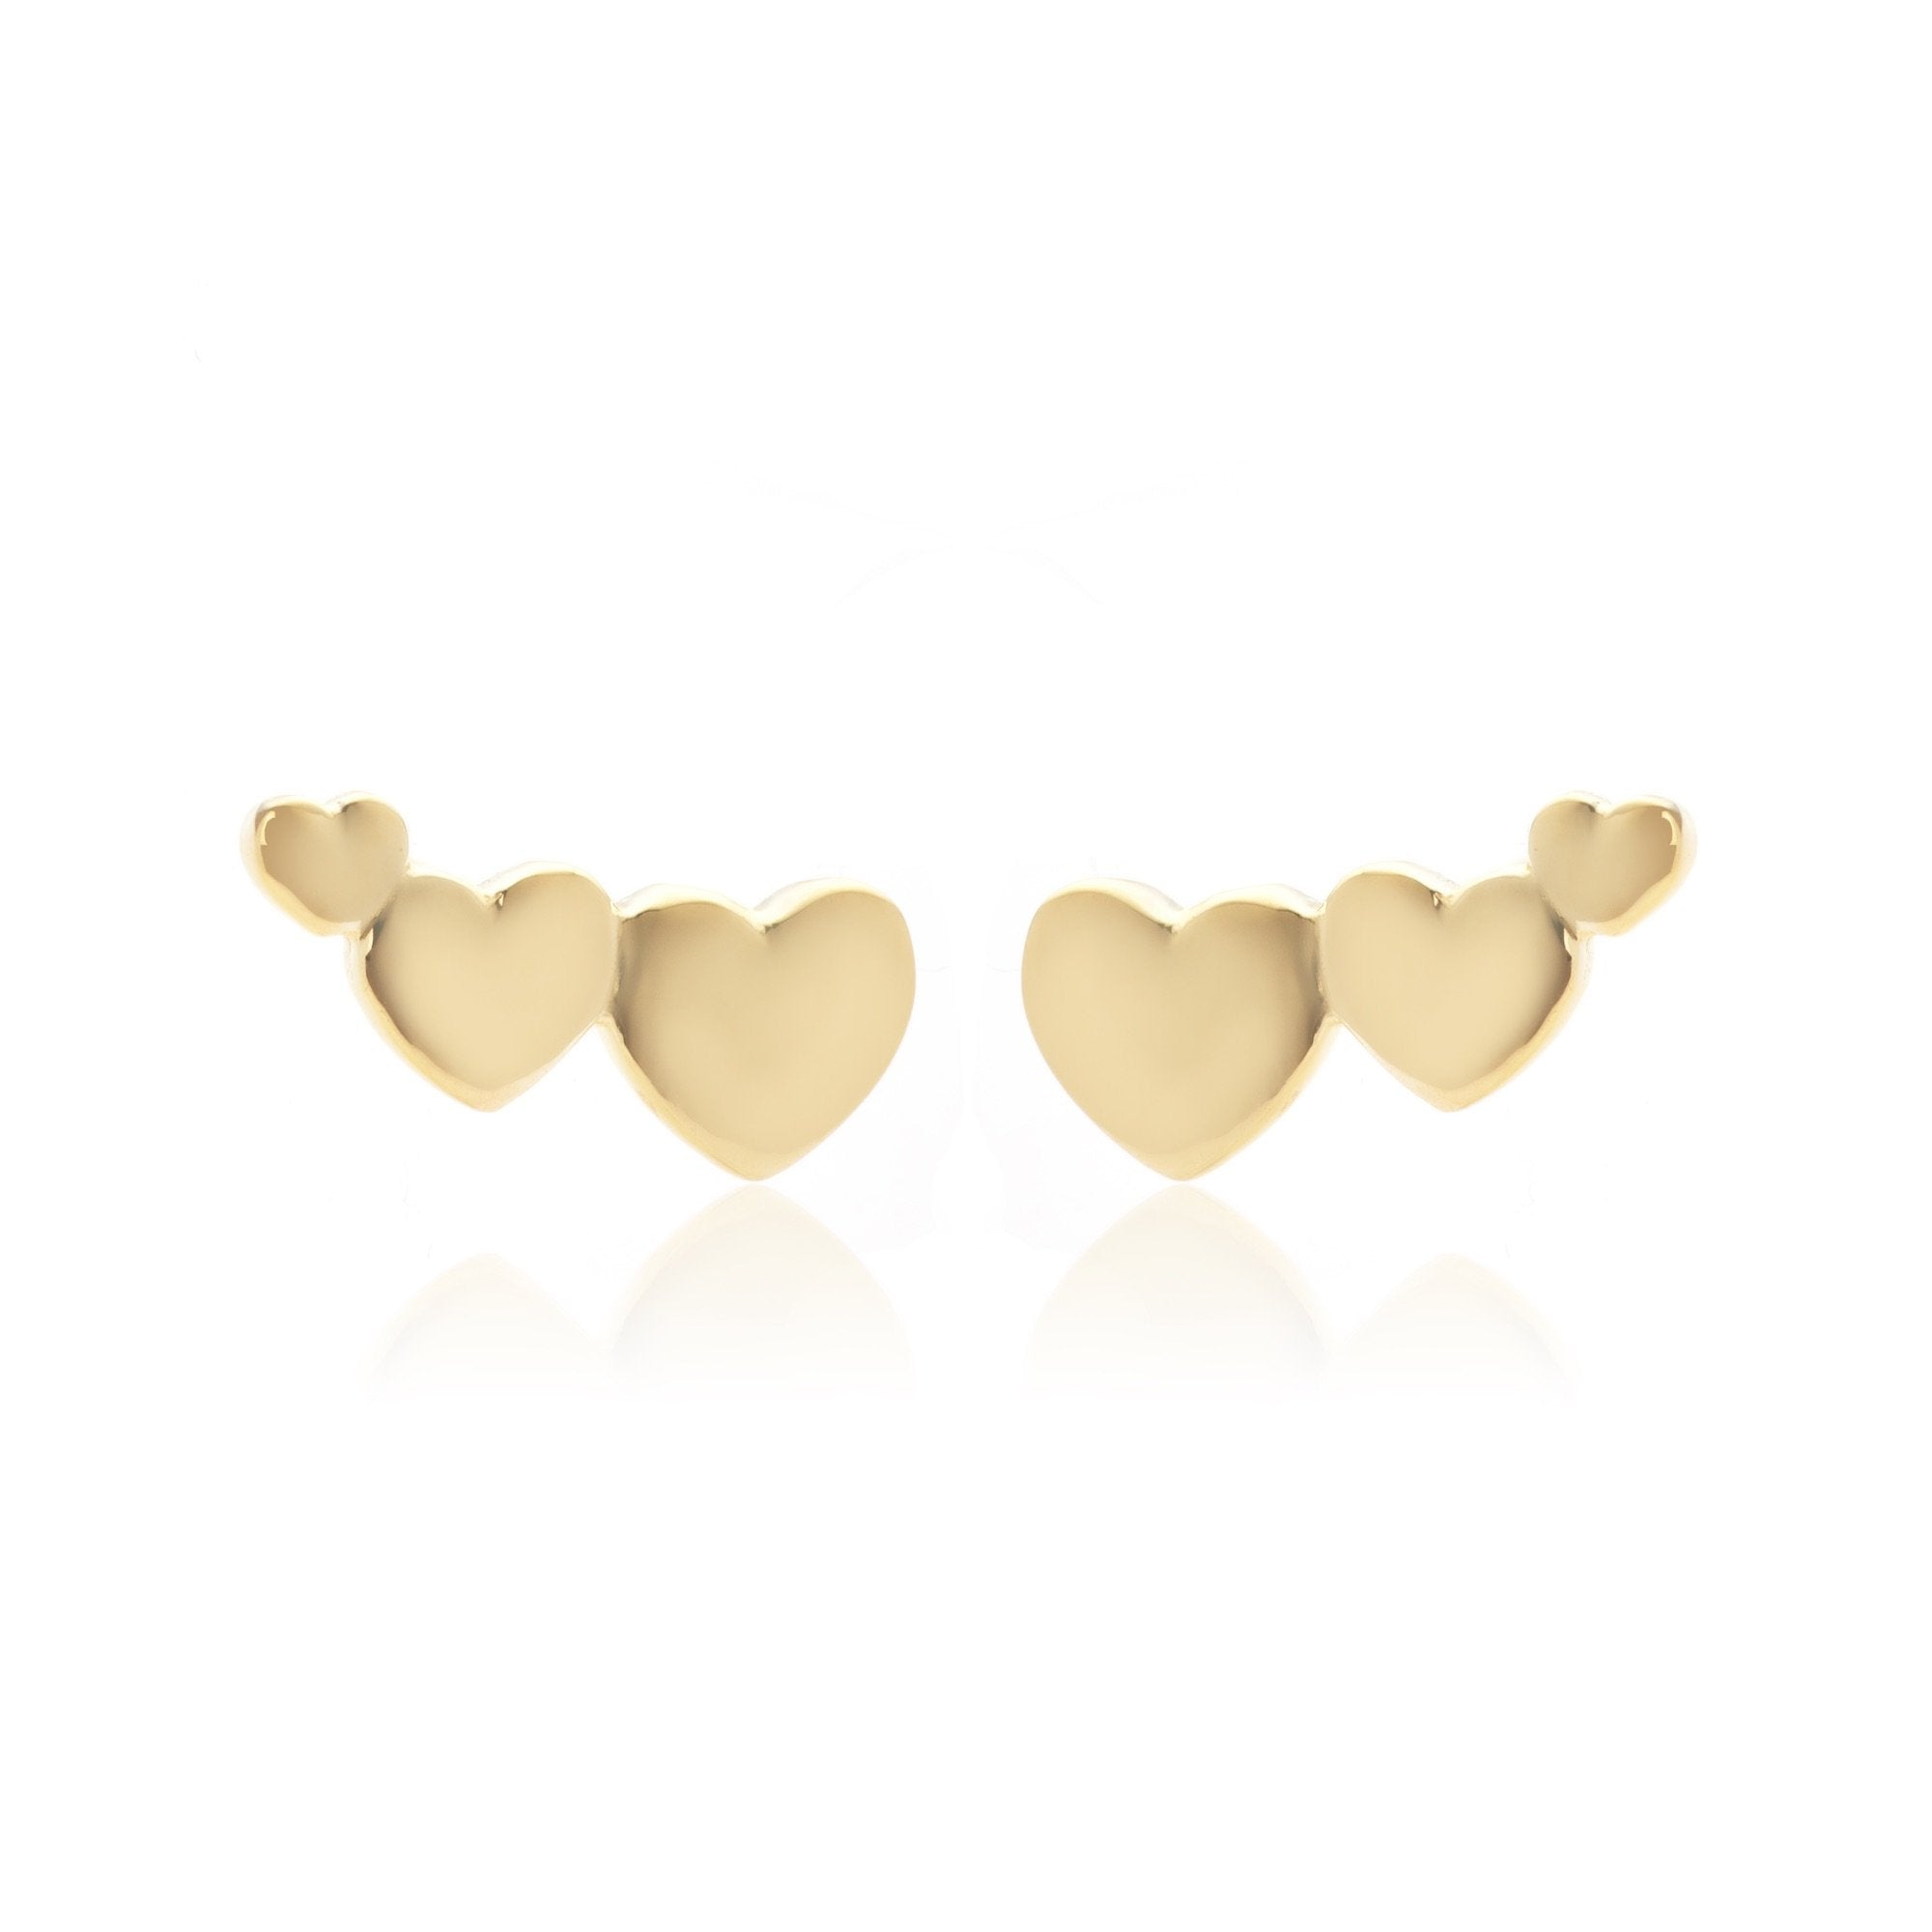 Silk & Steel Jewellery Superfine Sterling Silver Heart Climber Gold earrings